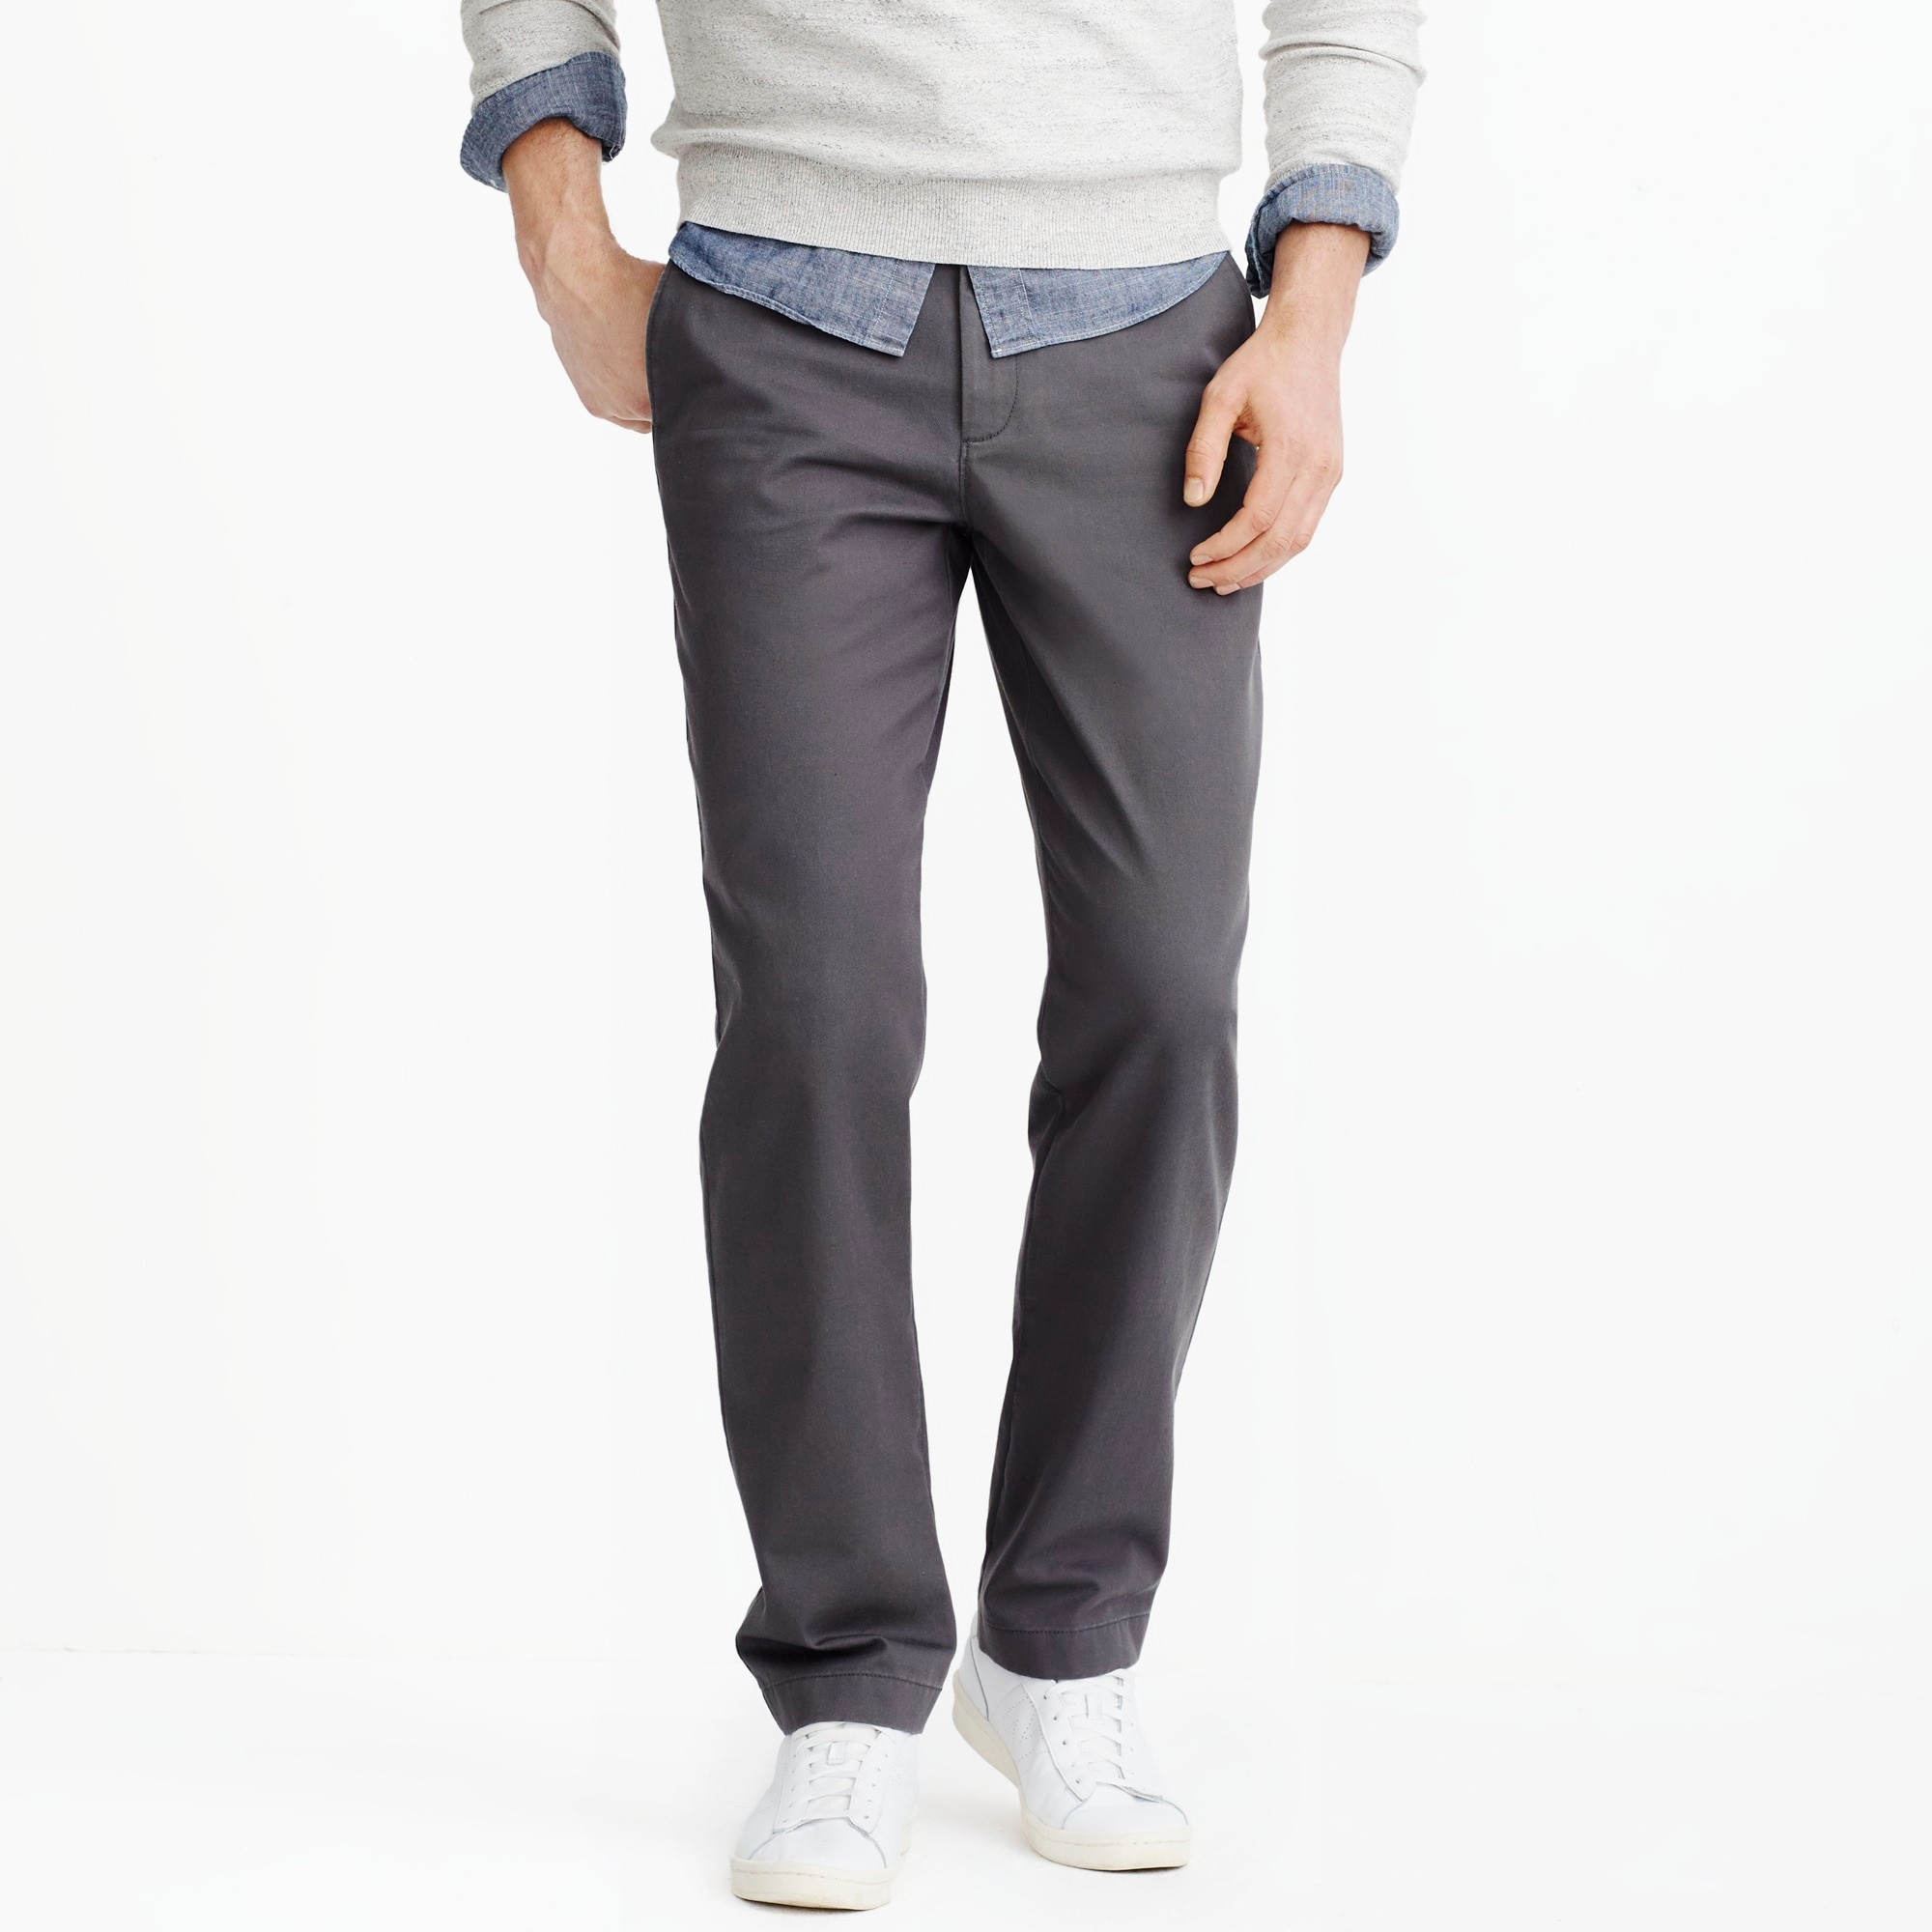 bleecker athletic-fit broken-in chino - men's pants